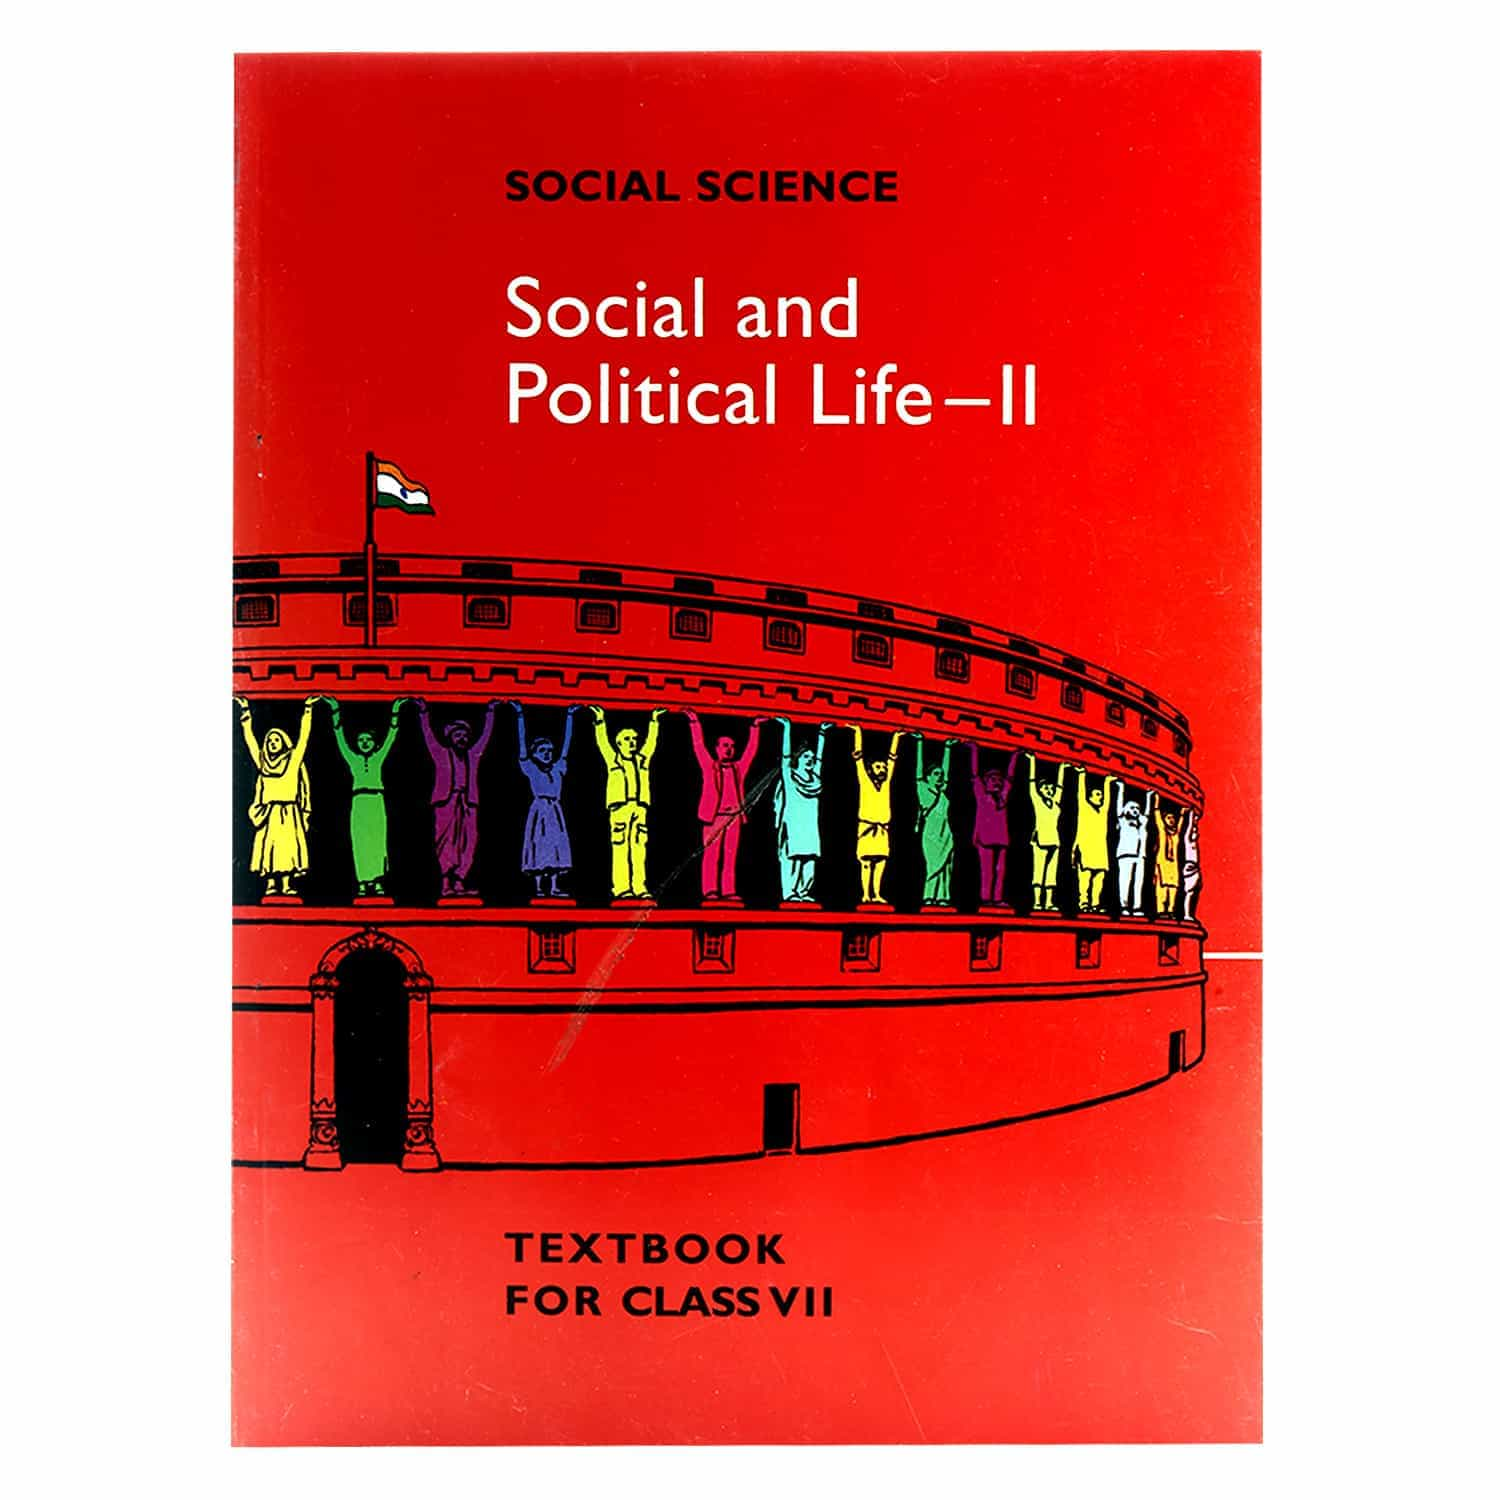 NCERT Social Science Textbook - Class 7 - Social and Political Life II